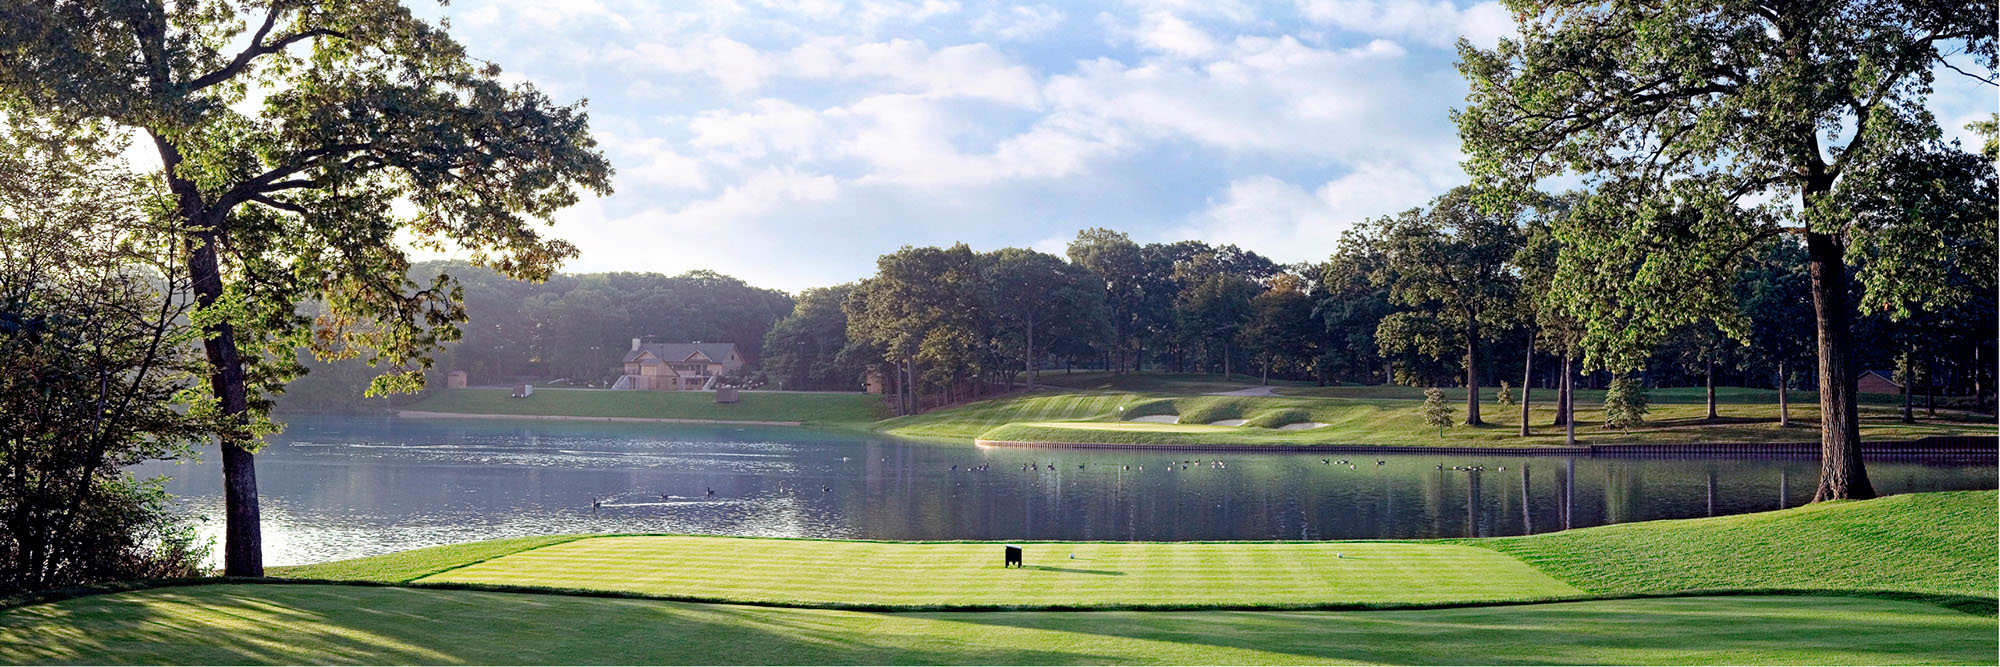 Golf Course Image - Medinah 3 No. 2